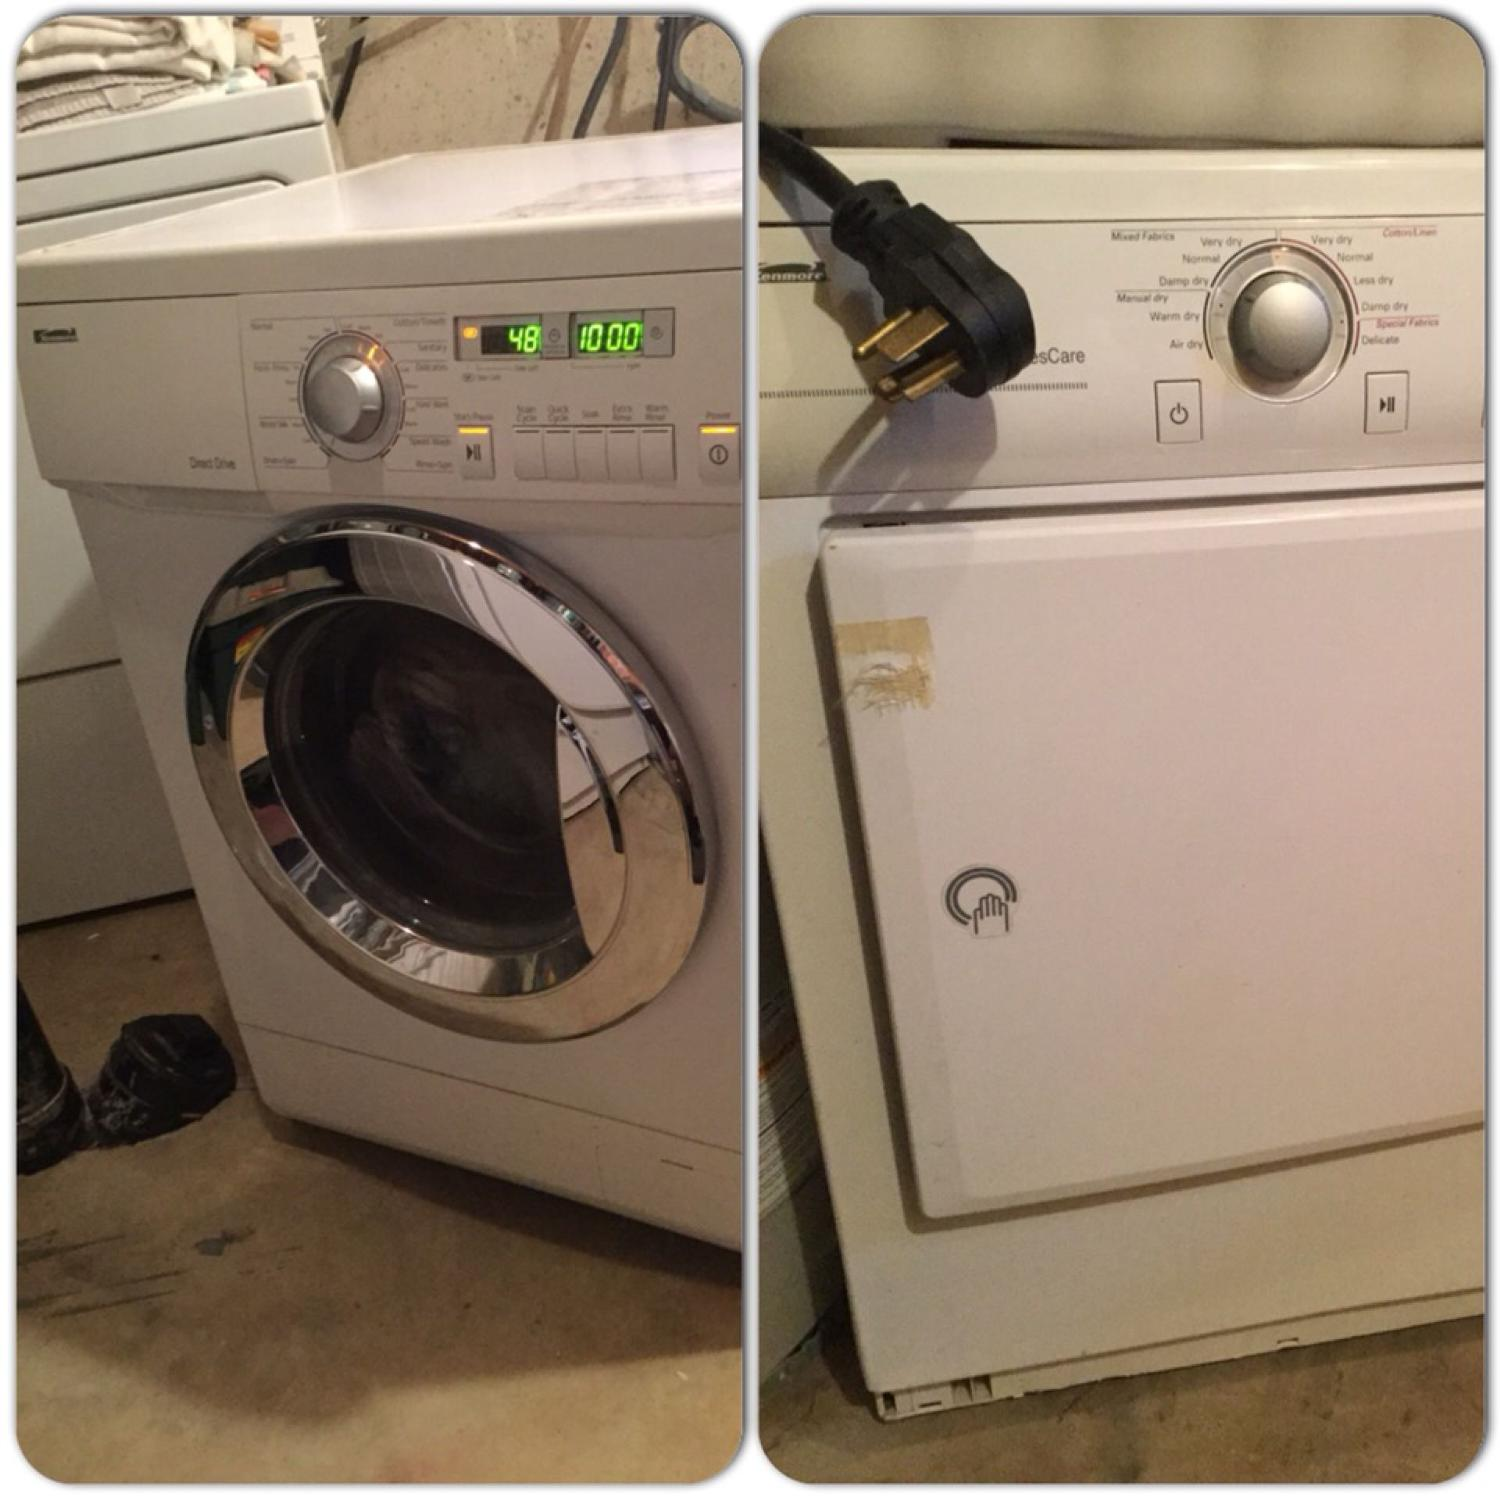 Reduced Price 250 00 Apartment Size Kenmore Direct Drive Washer Clothes Care Dryer For Both